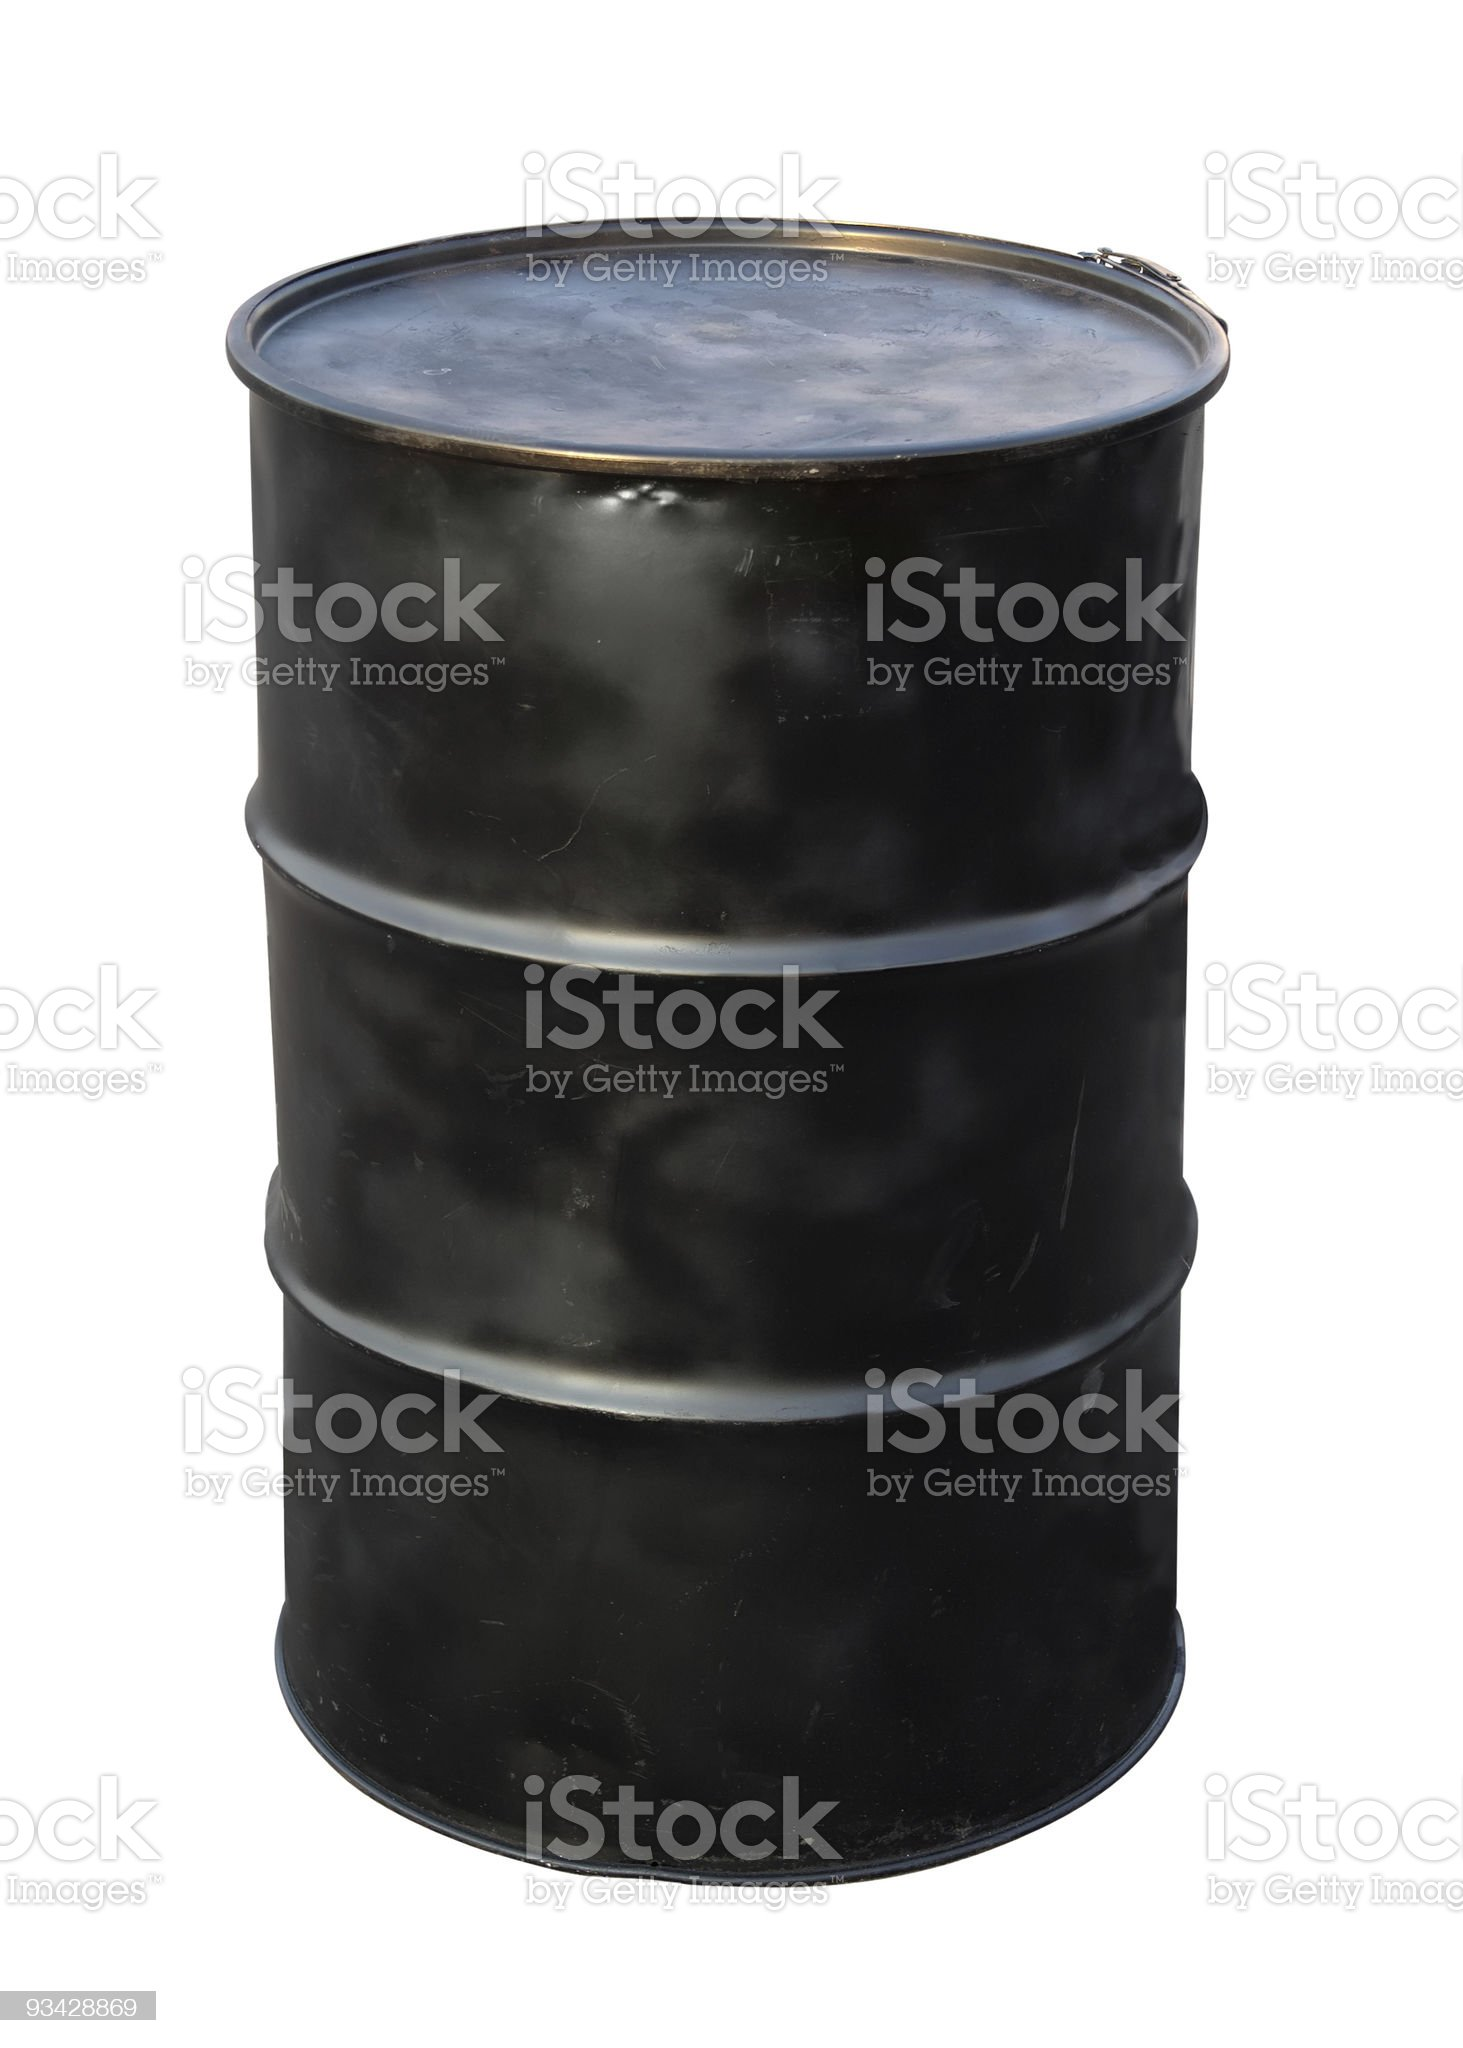 A black oil barrel on a white background royalty-free stock photo